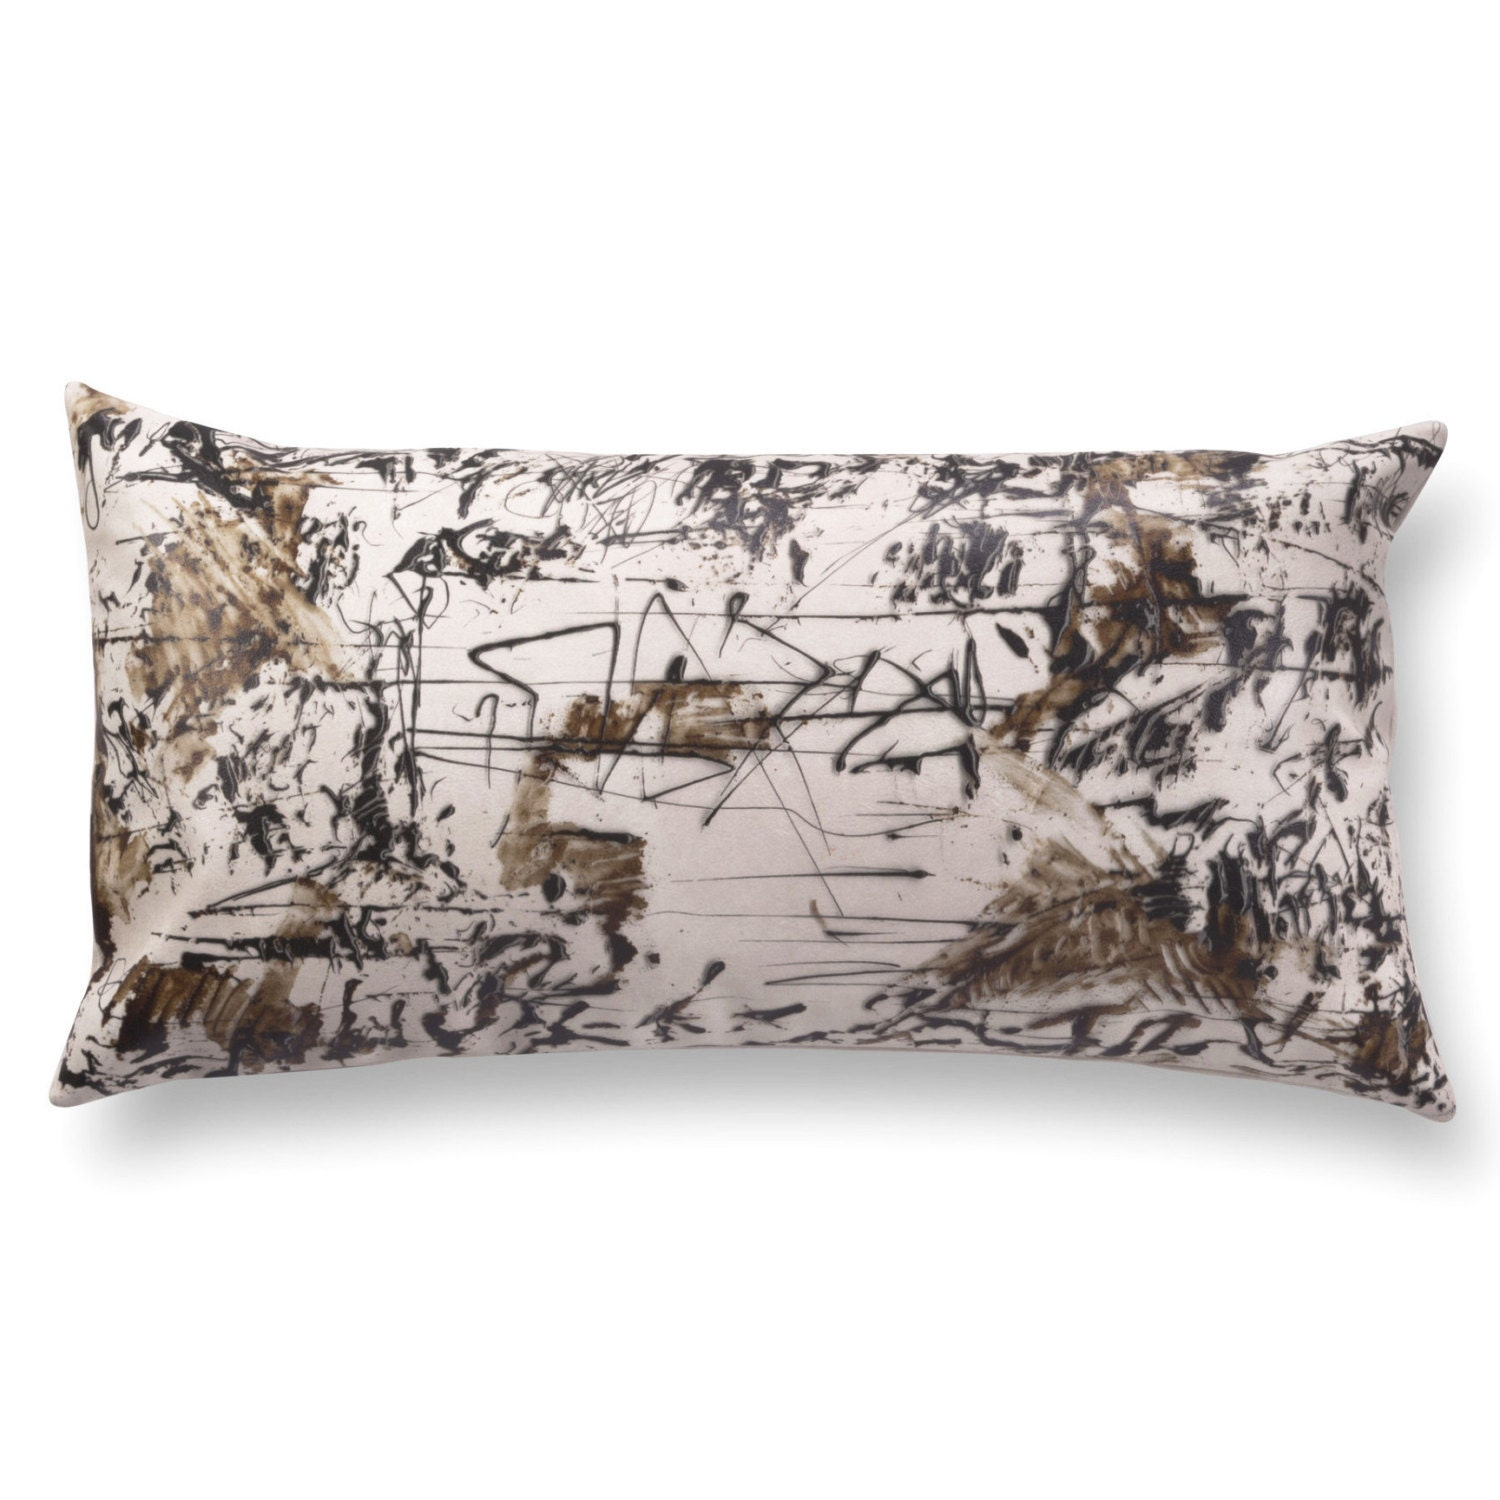 White Leather Throw Pillow : Monochrome pillow Long decorative pillow off white leather